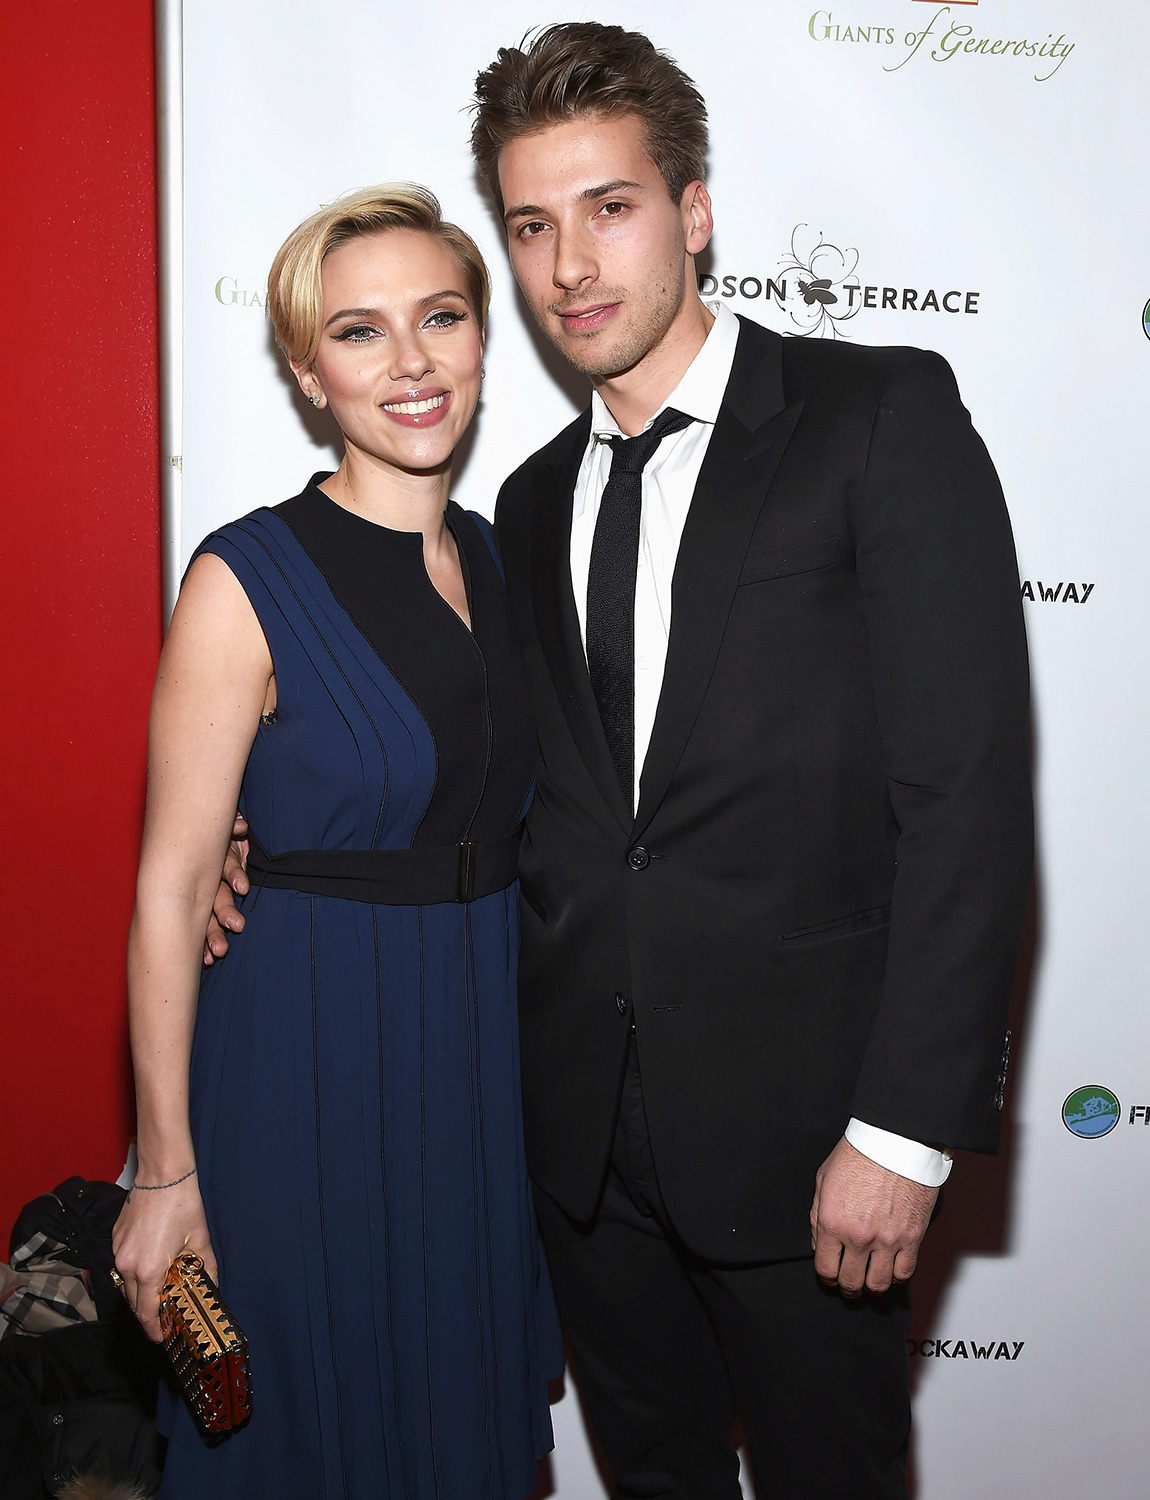 Scarlett Johansson and her brother Hunter Johansson